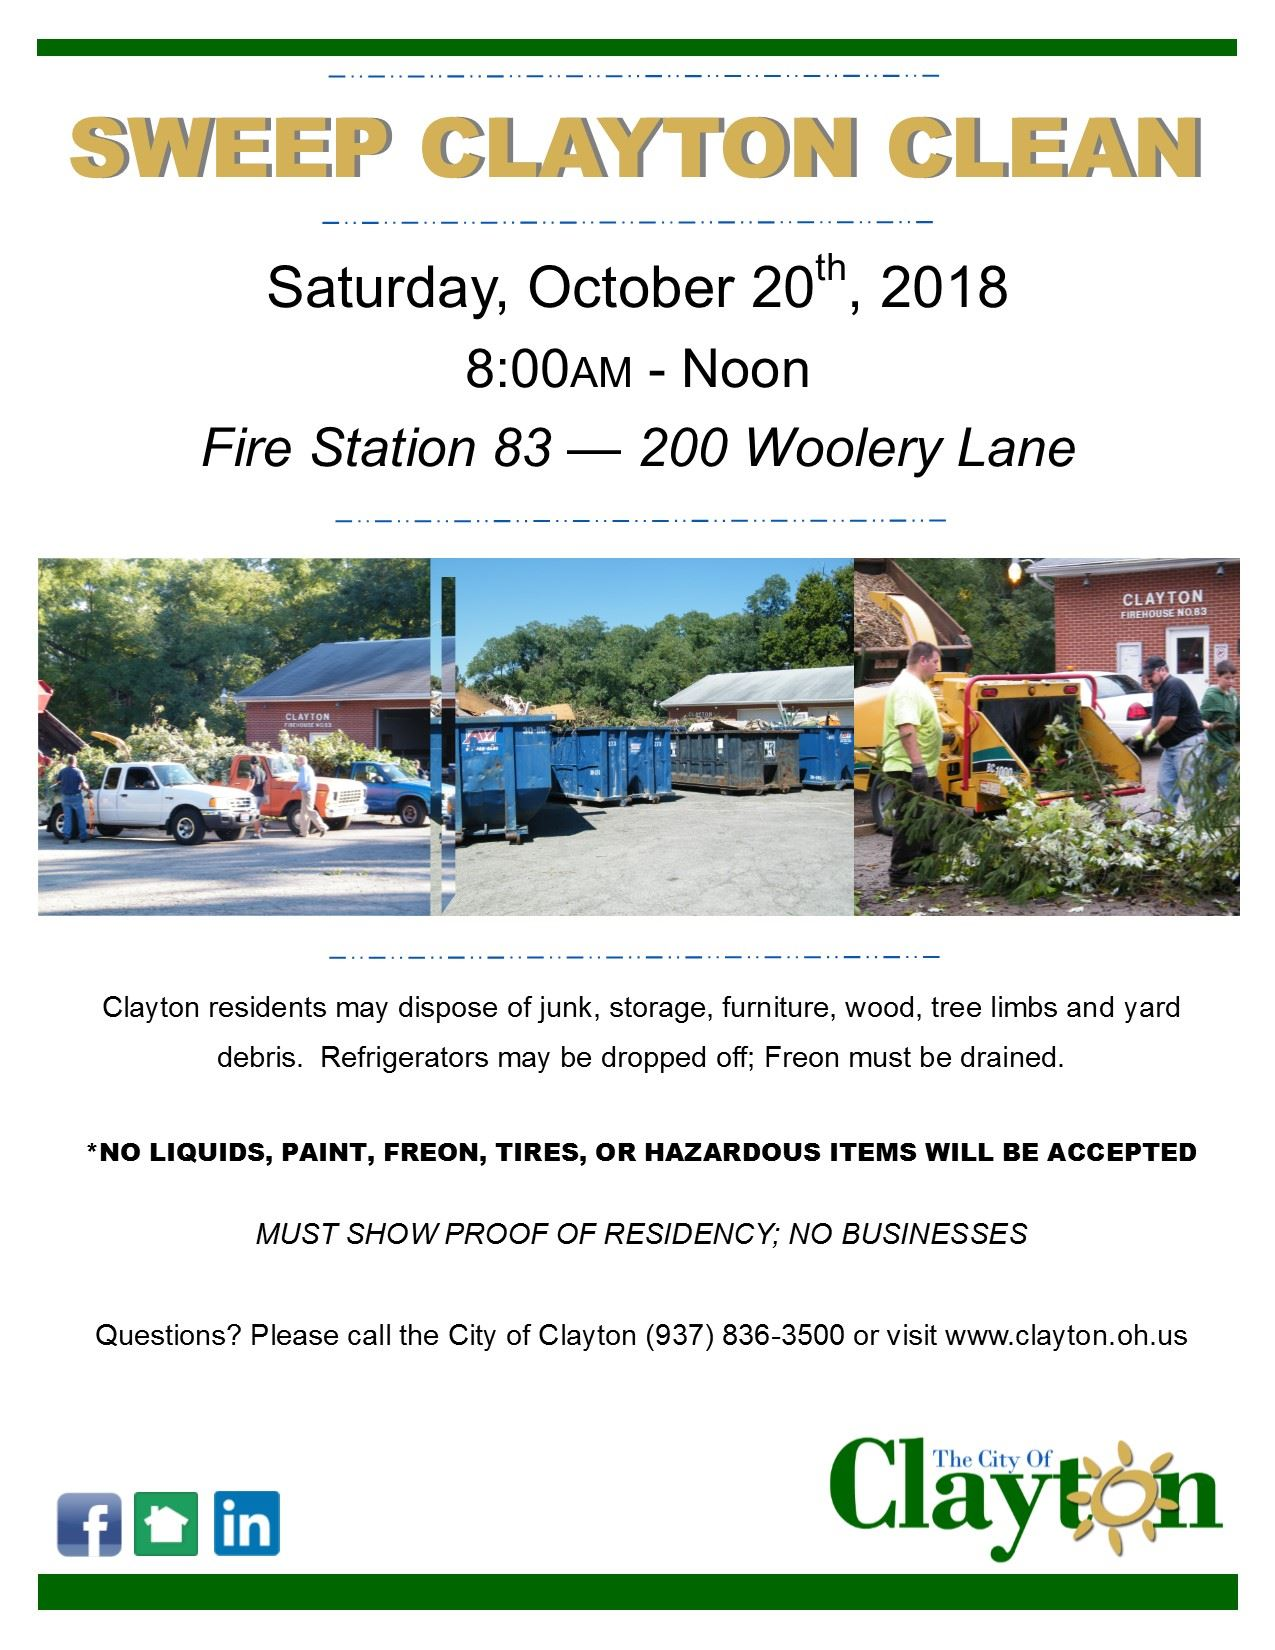 Sweep Clayton Clean Flyer - October 2018